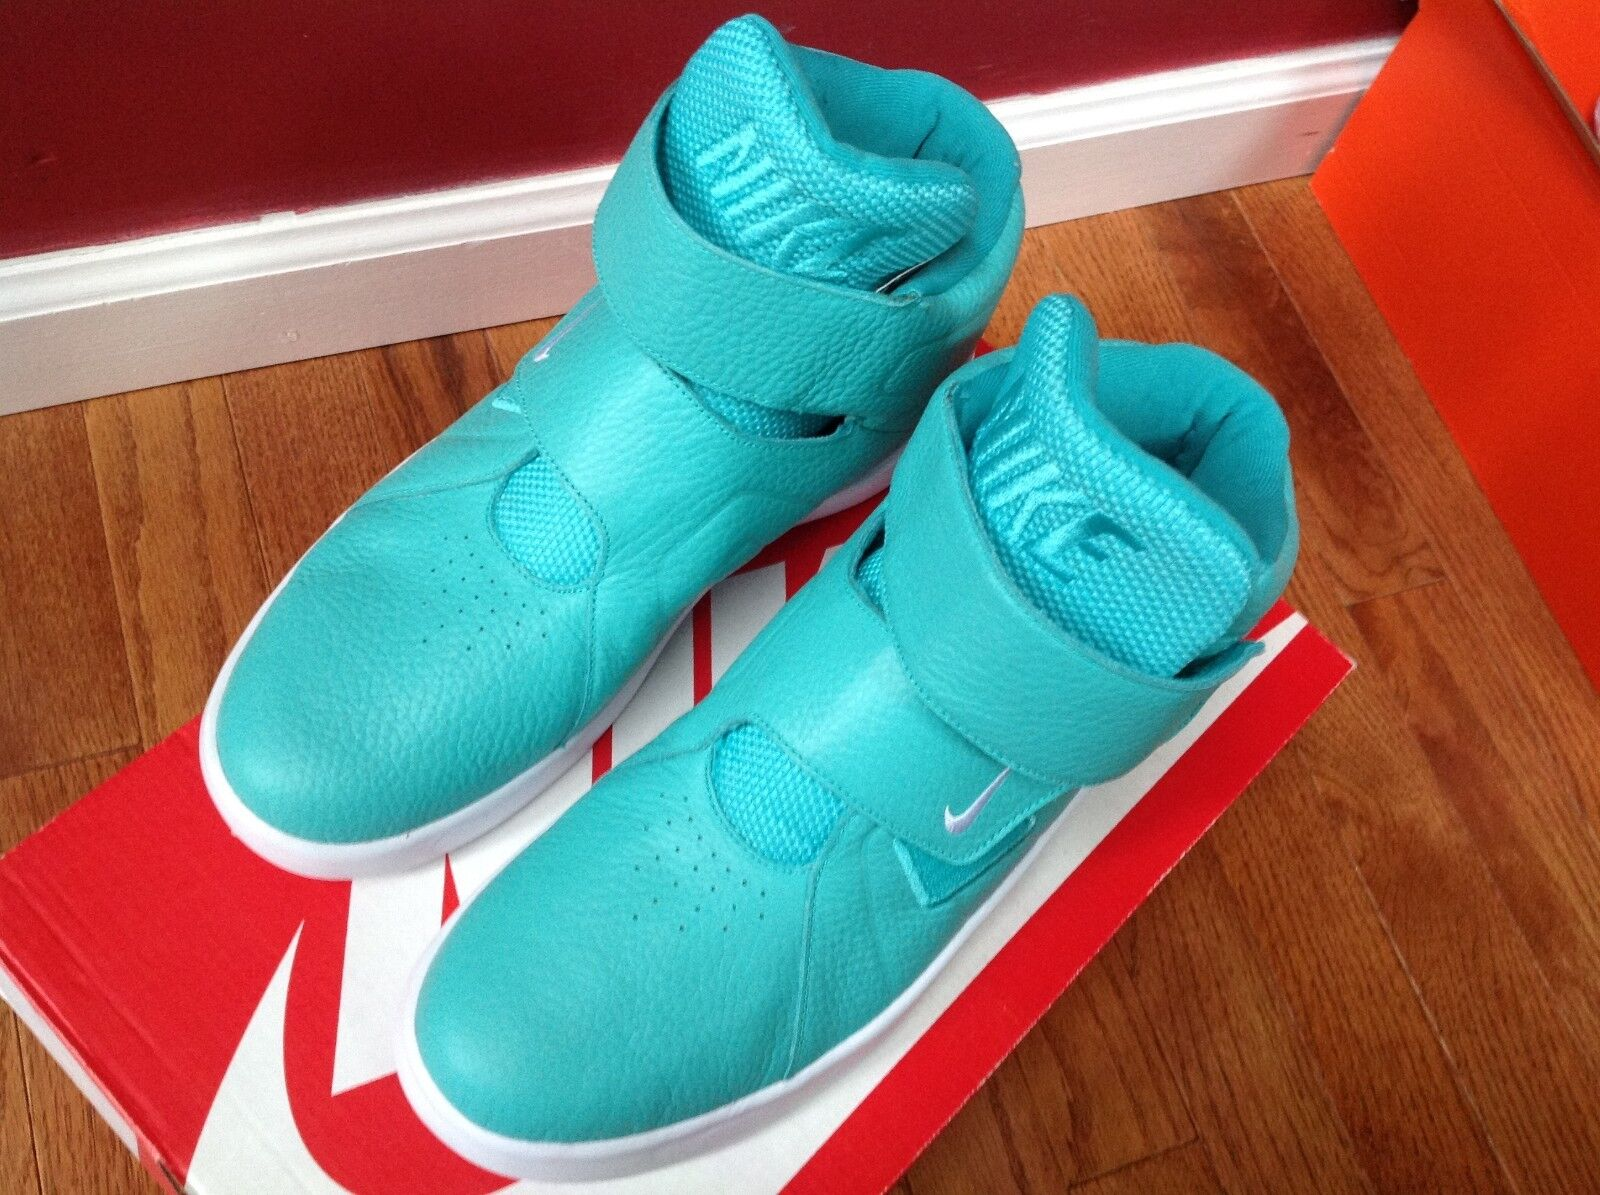 Nike Men's Marxman Hyper Jade & White Synthetic Leather Basketball shoes SZ 9